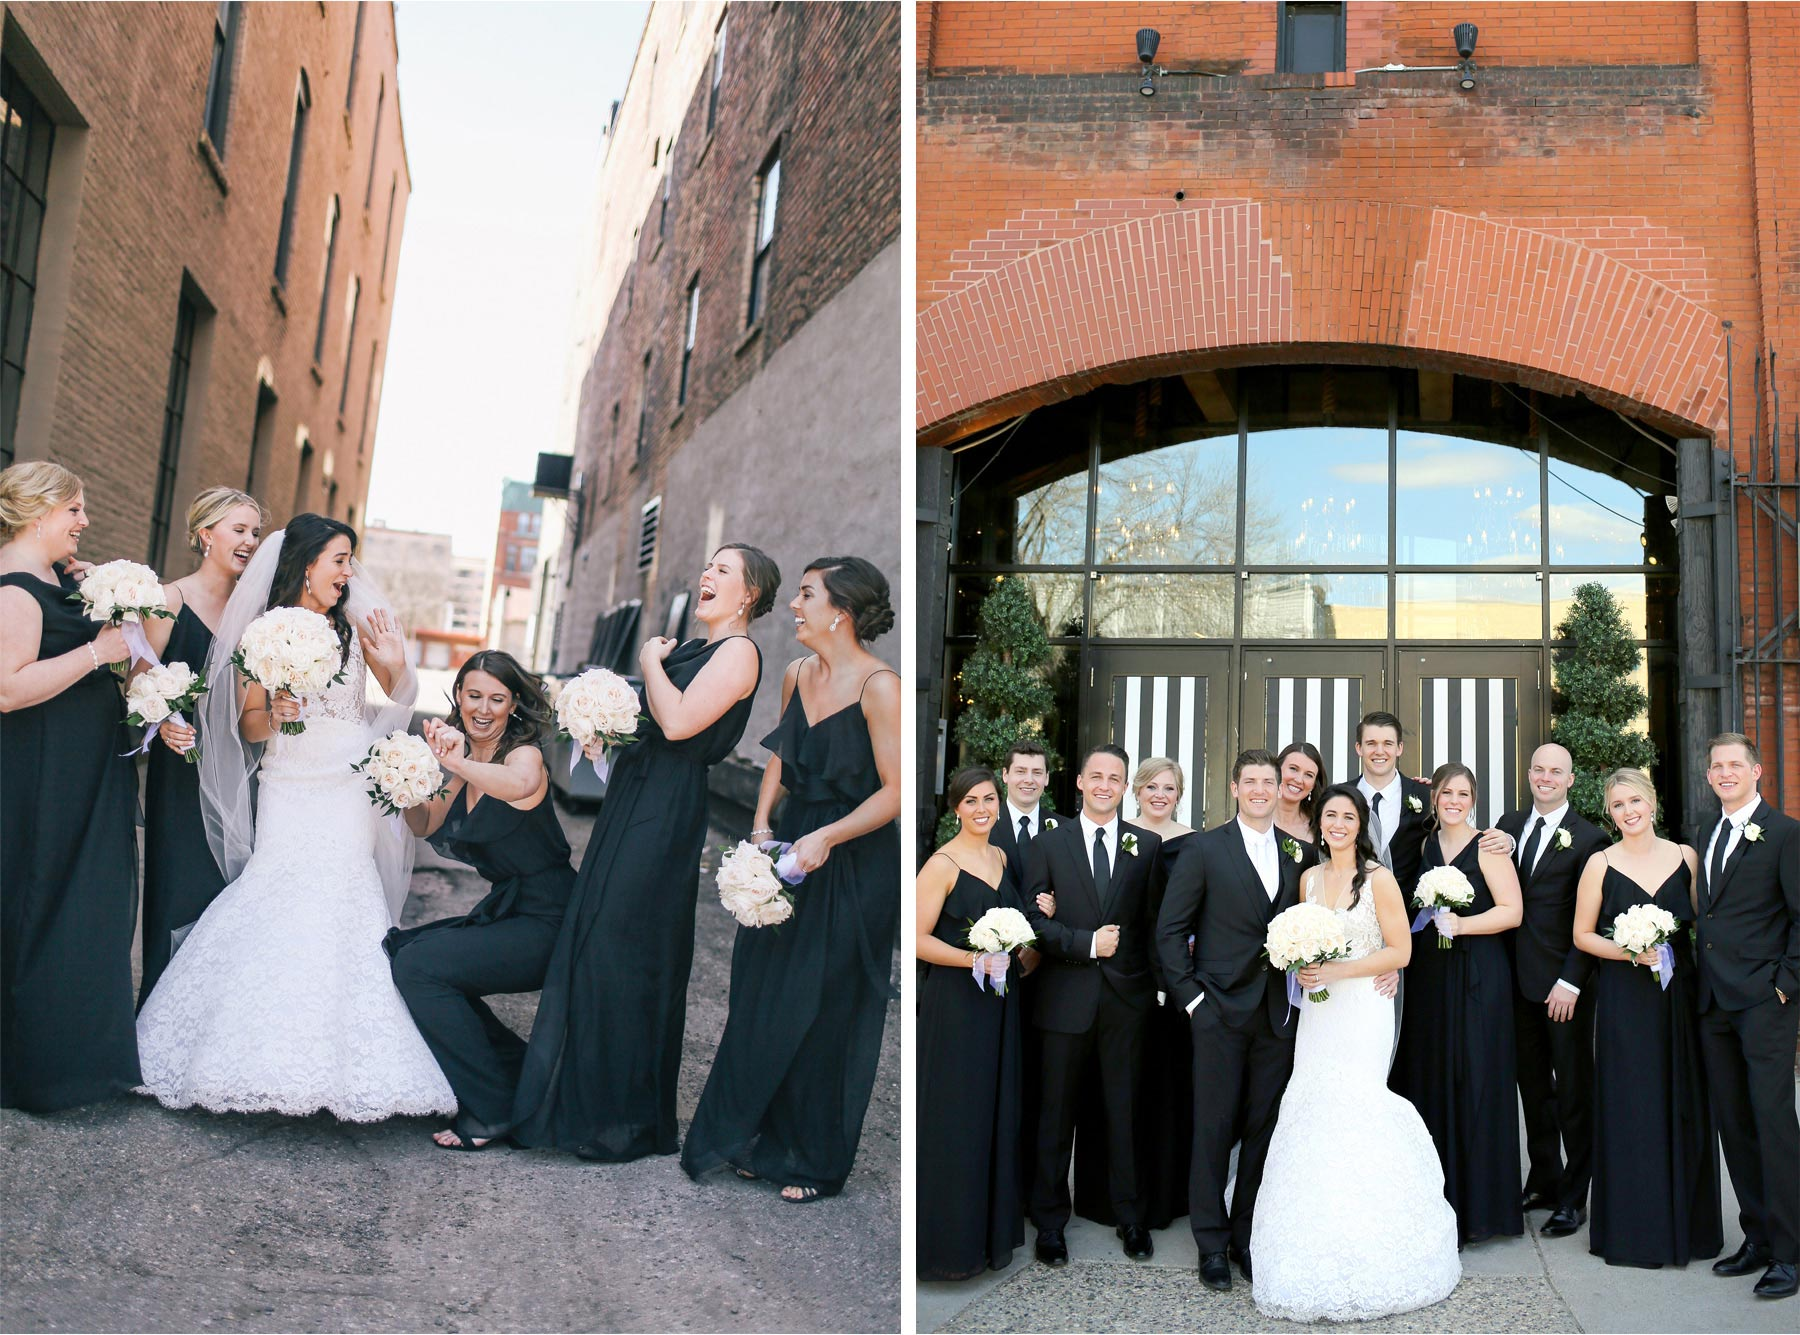 10-Minneapolis-Minnesota-Wedding-Photographer-by-Andrew-Vick-Photography-Aria-Spring-Bride-Groom-Bridal-Party-Bridesmaids-Groomsmen-Flowers-Dancing-Vintage-Alex-and-Andy.jpg